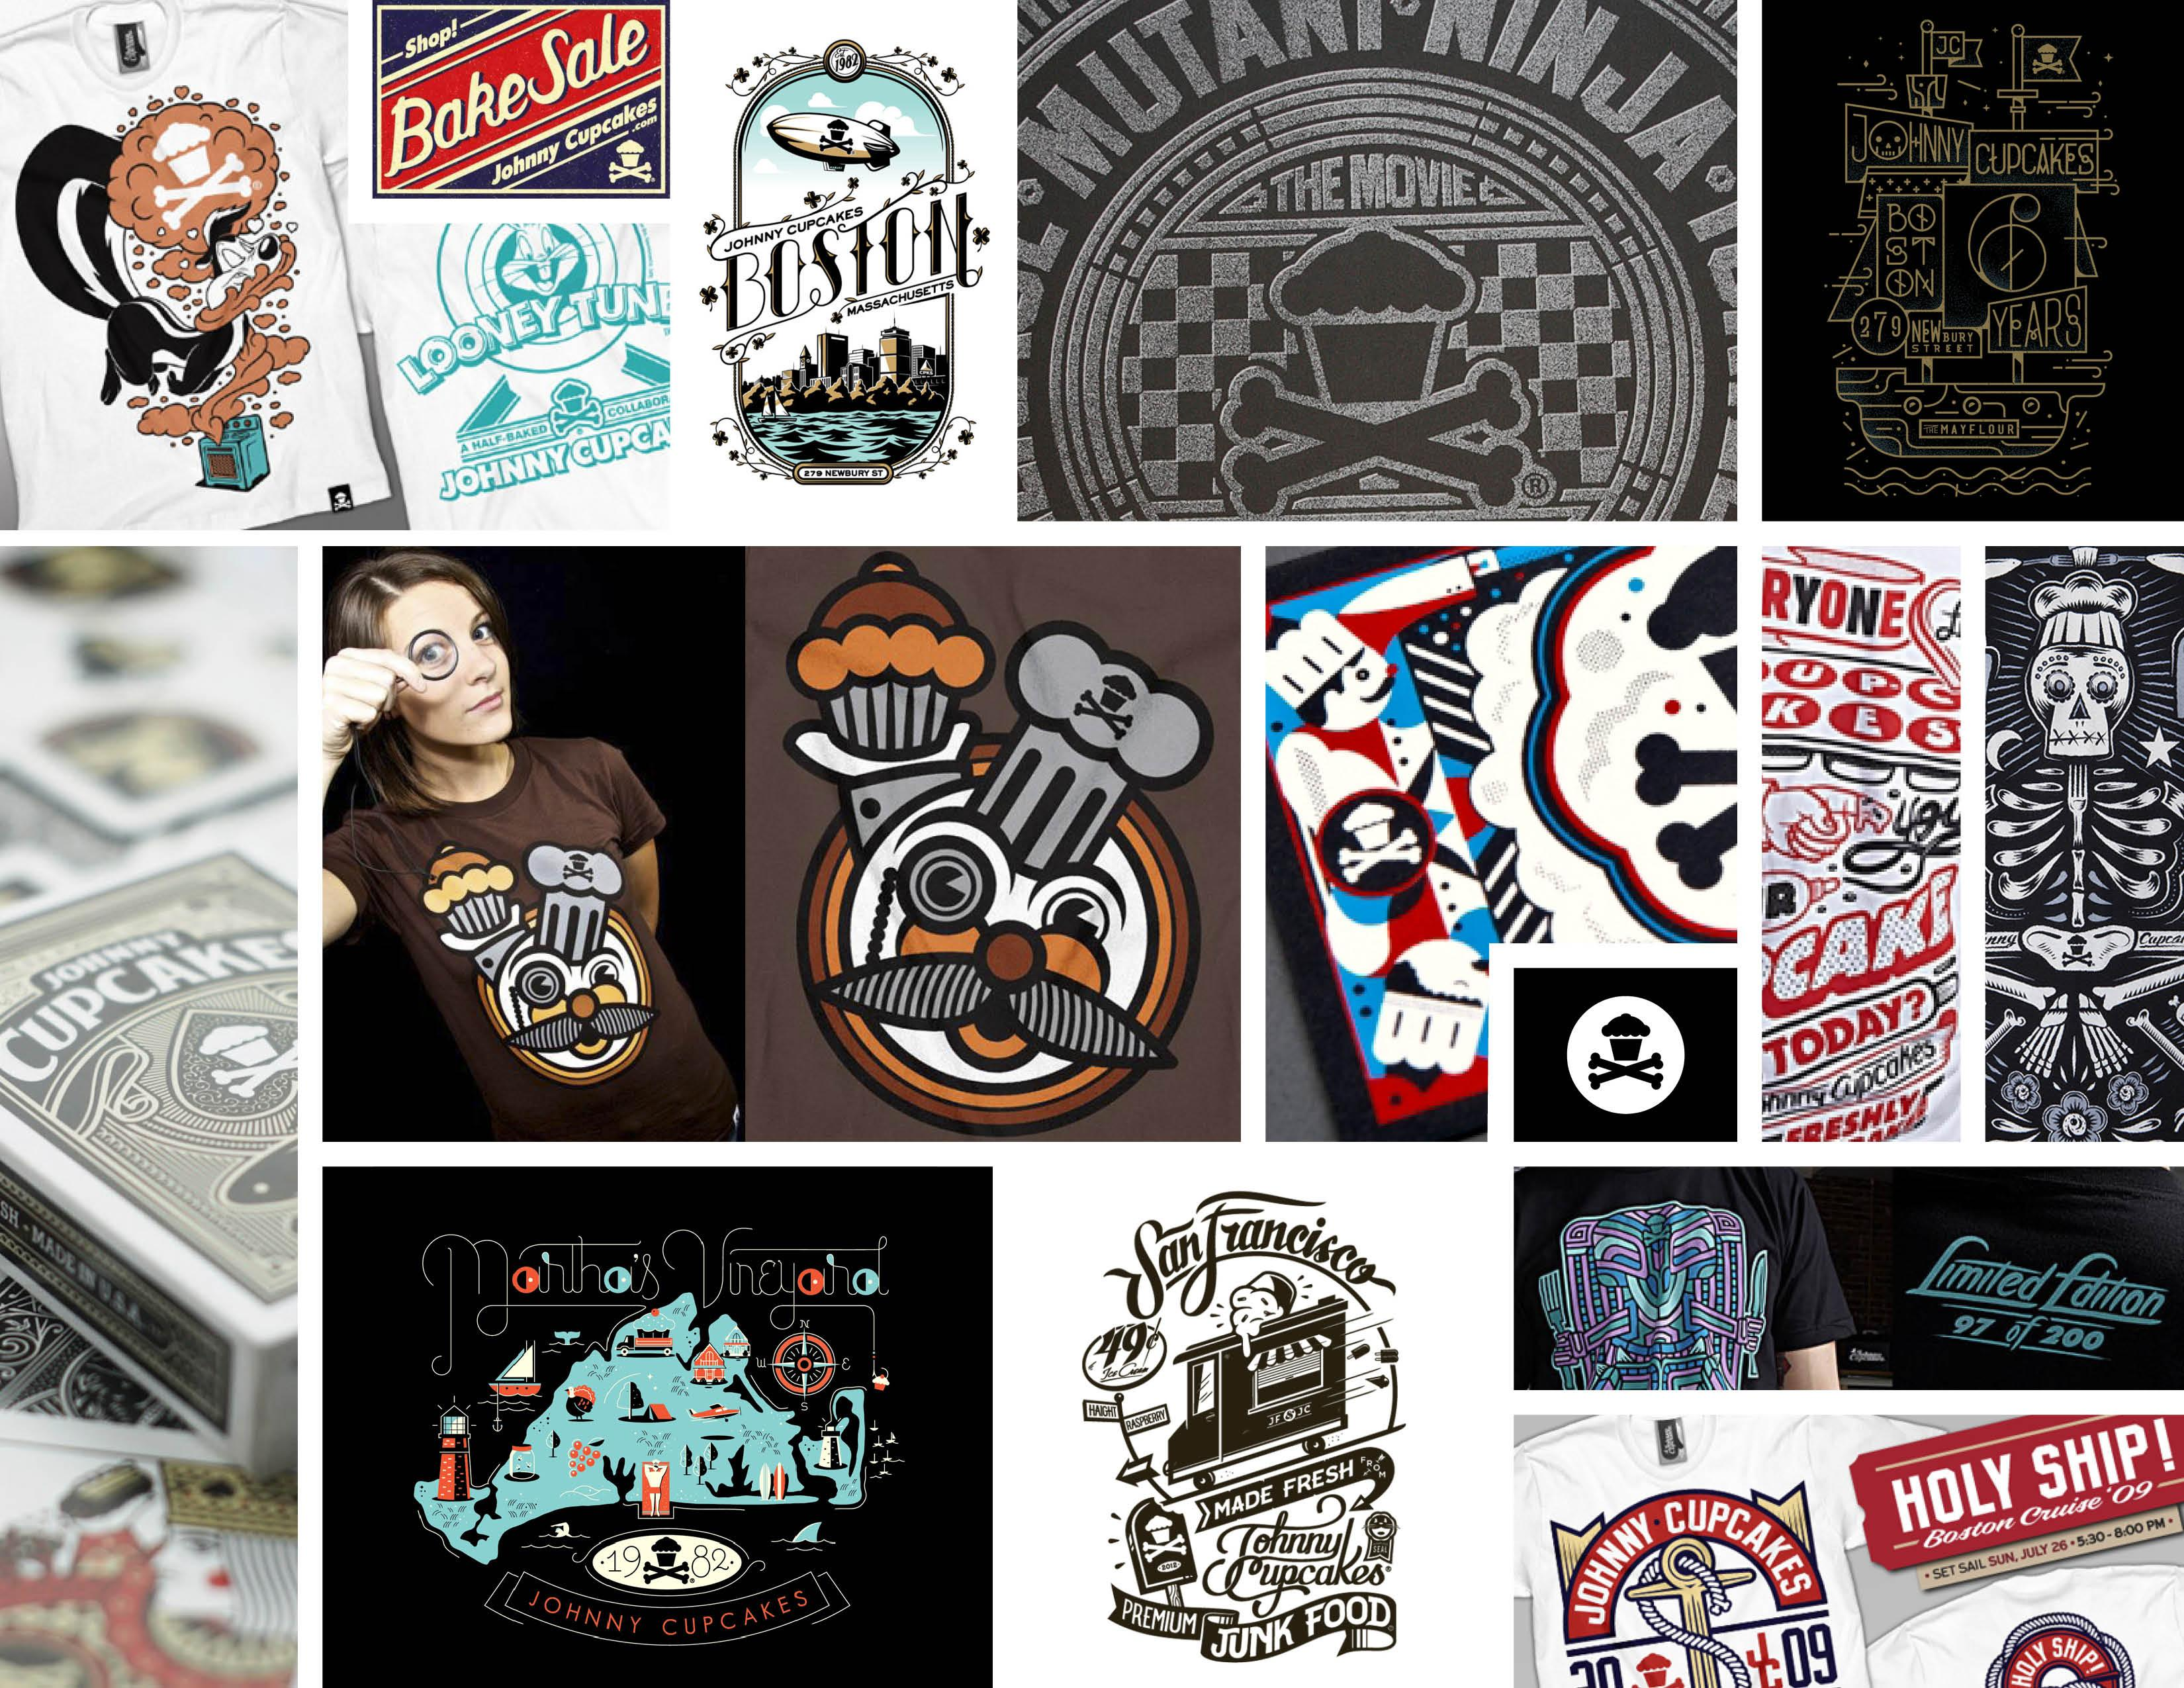 What makes Johnny Cupcakes? - image 3 - student project